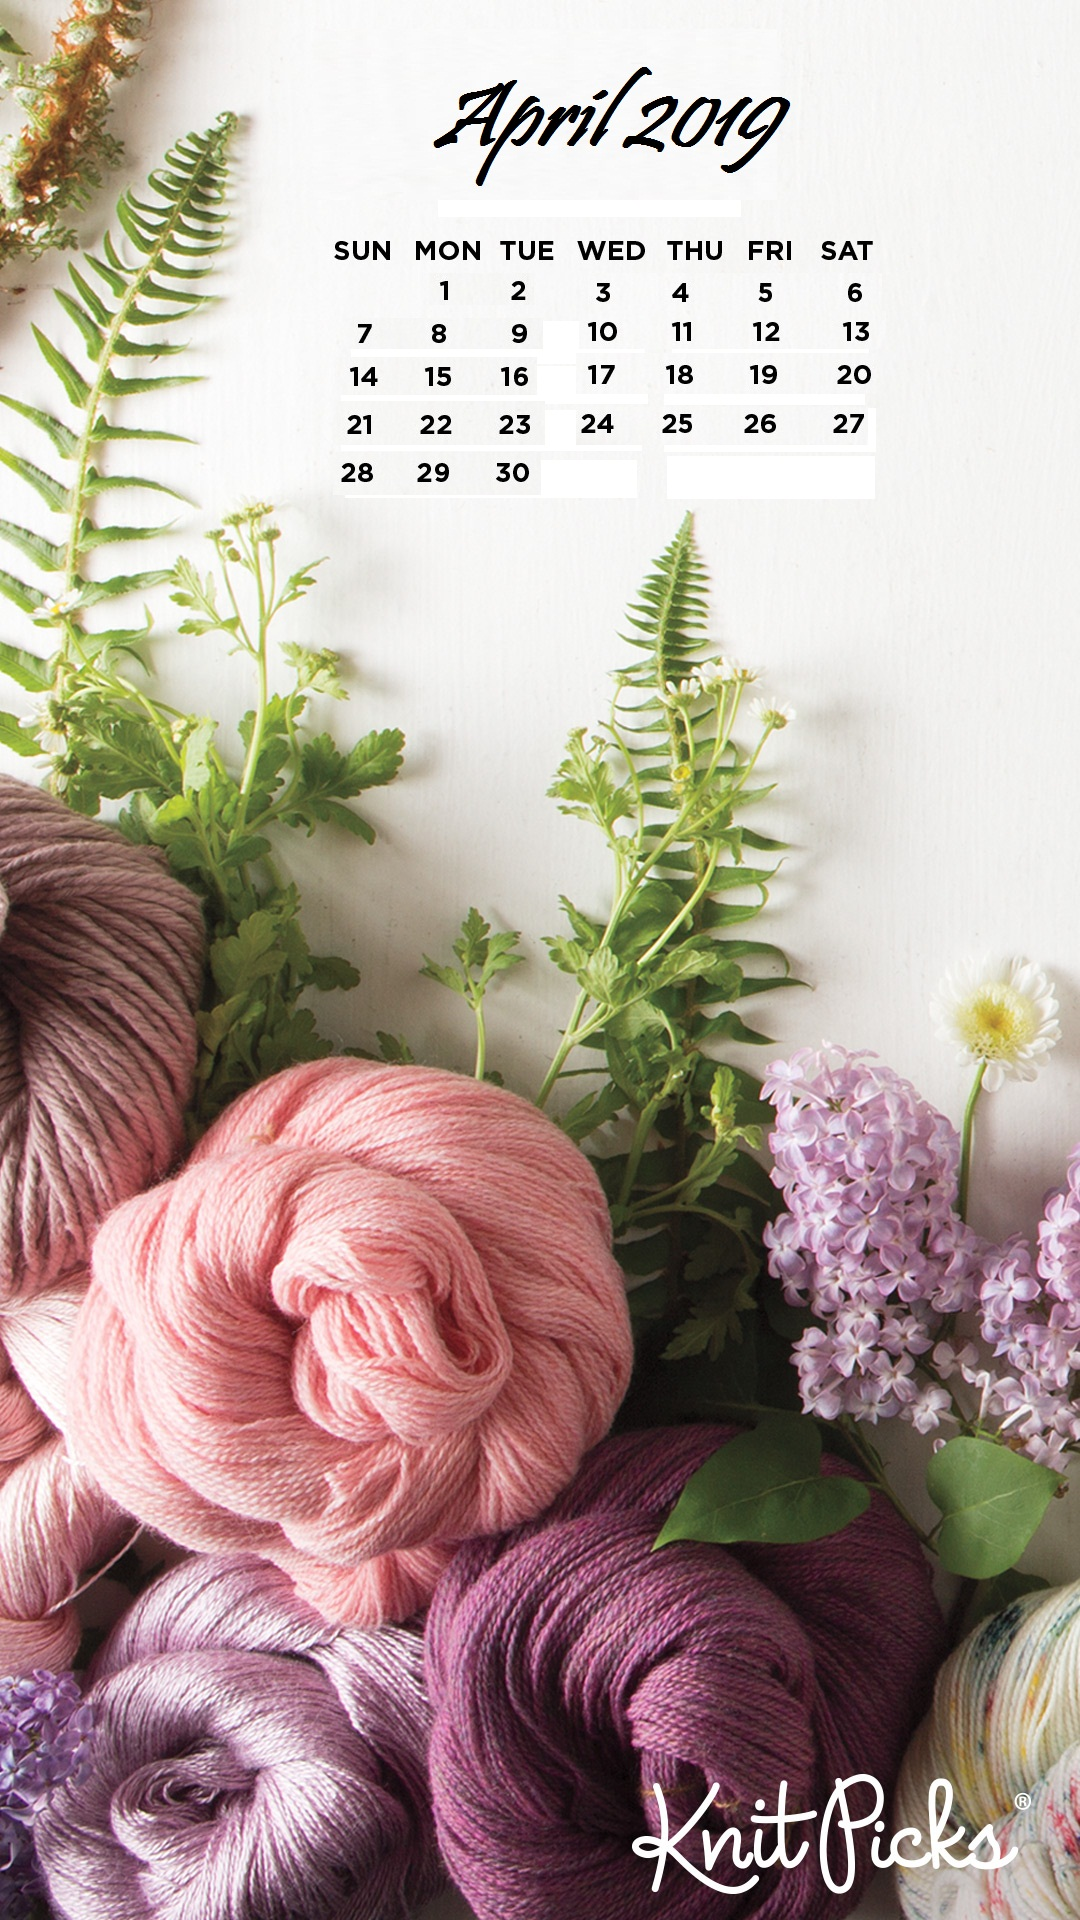 April 2019 Beautifull Flowers iPhone Wallpaper Calendar